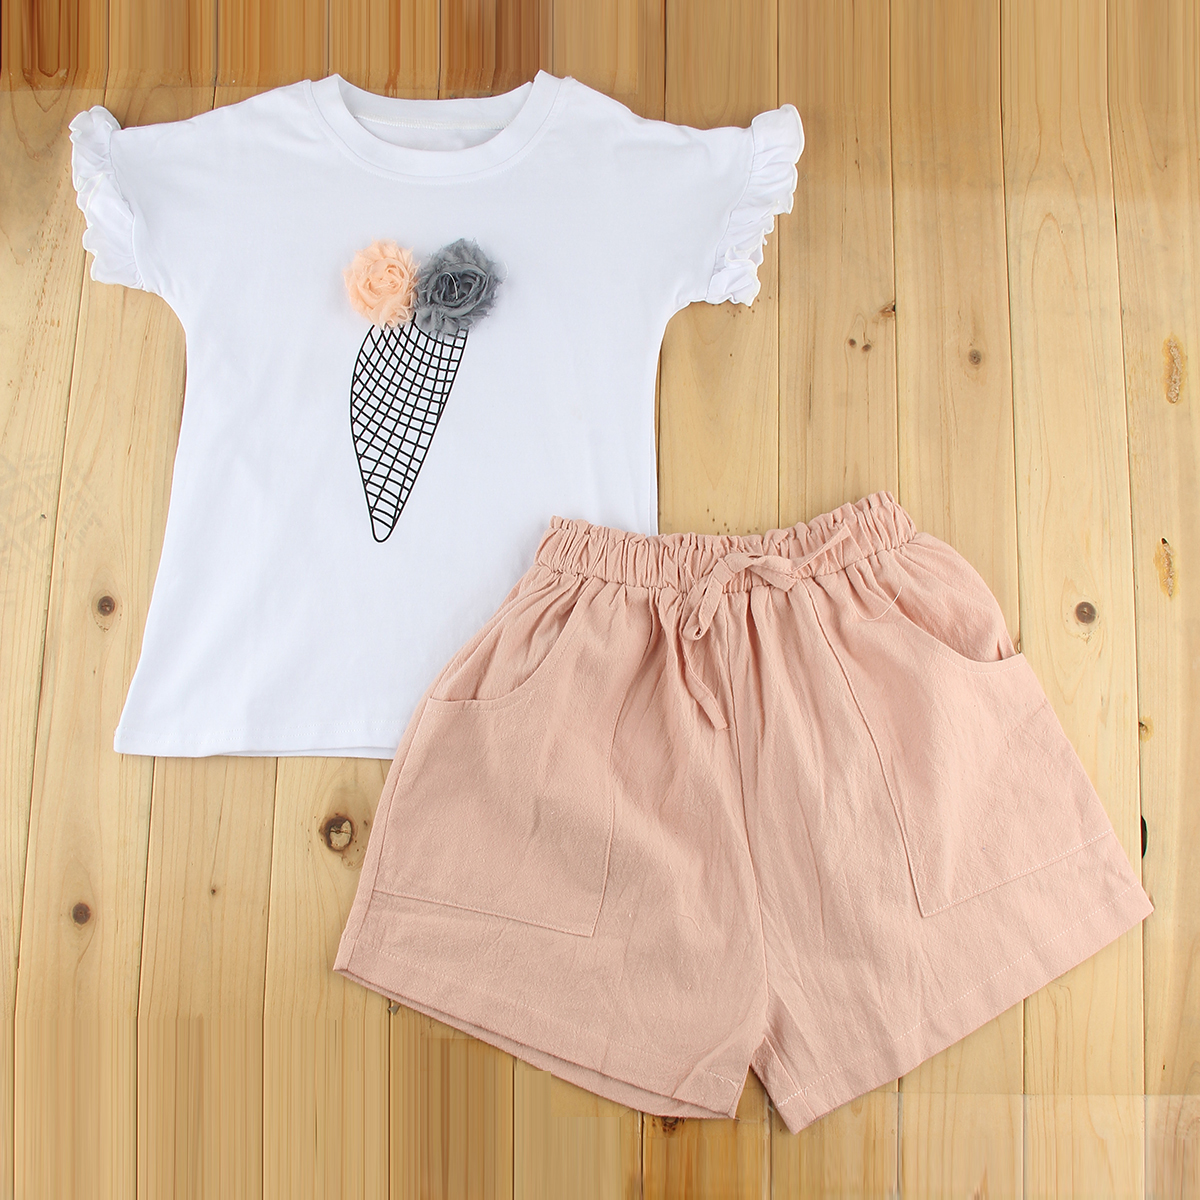 Baby Girls Toddler Kids Outfits T Shirt Ice Cream Pattern Short Sleeve Tops Shorts Pants 2PCS Summer Clothes Set Children Suit